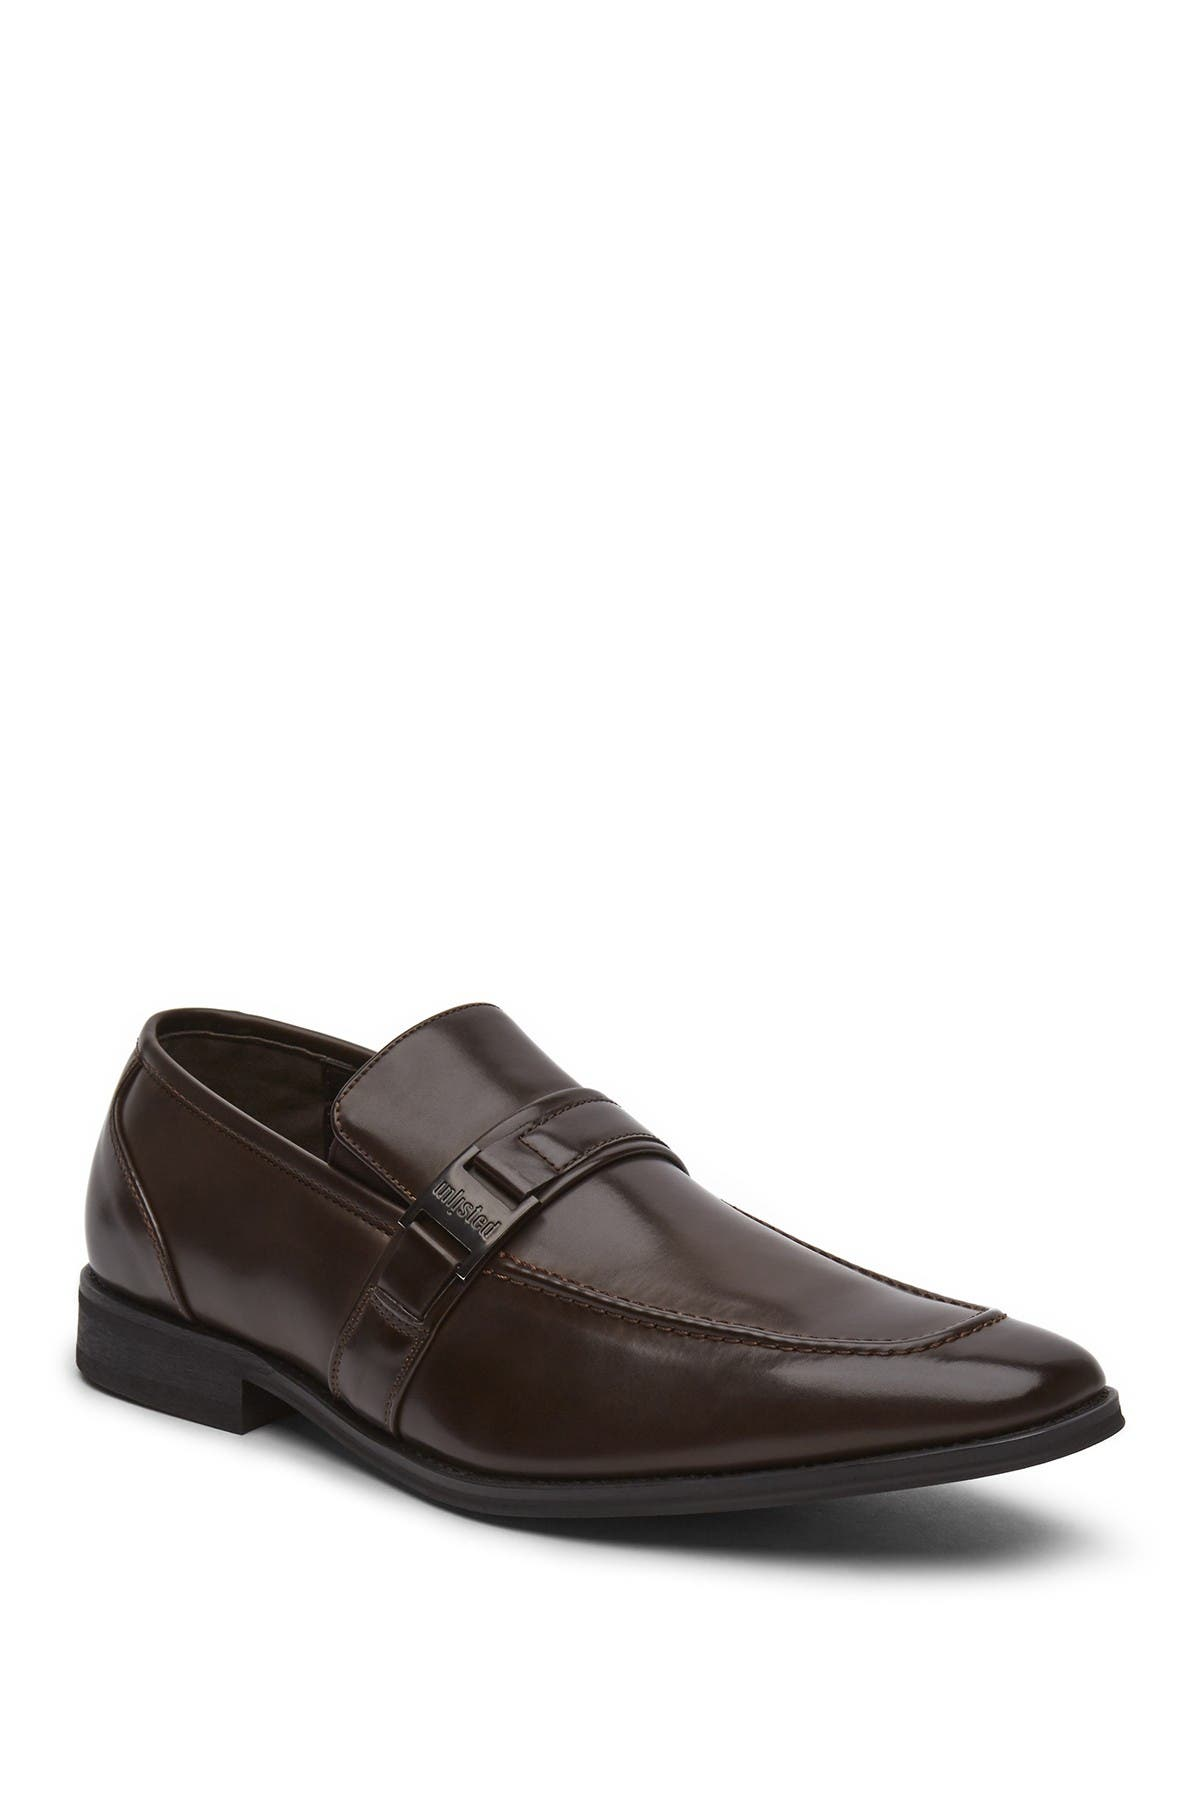 Image of Unlisted, A Kenneth Cole Production Mu-Stash Buckled Oxford